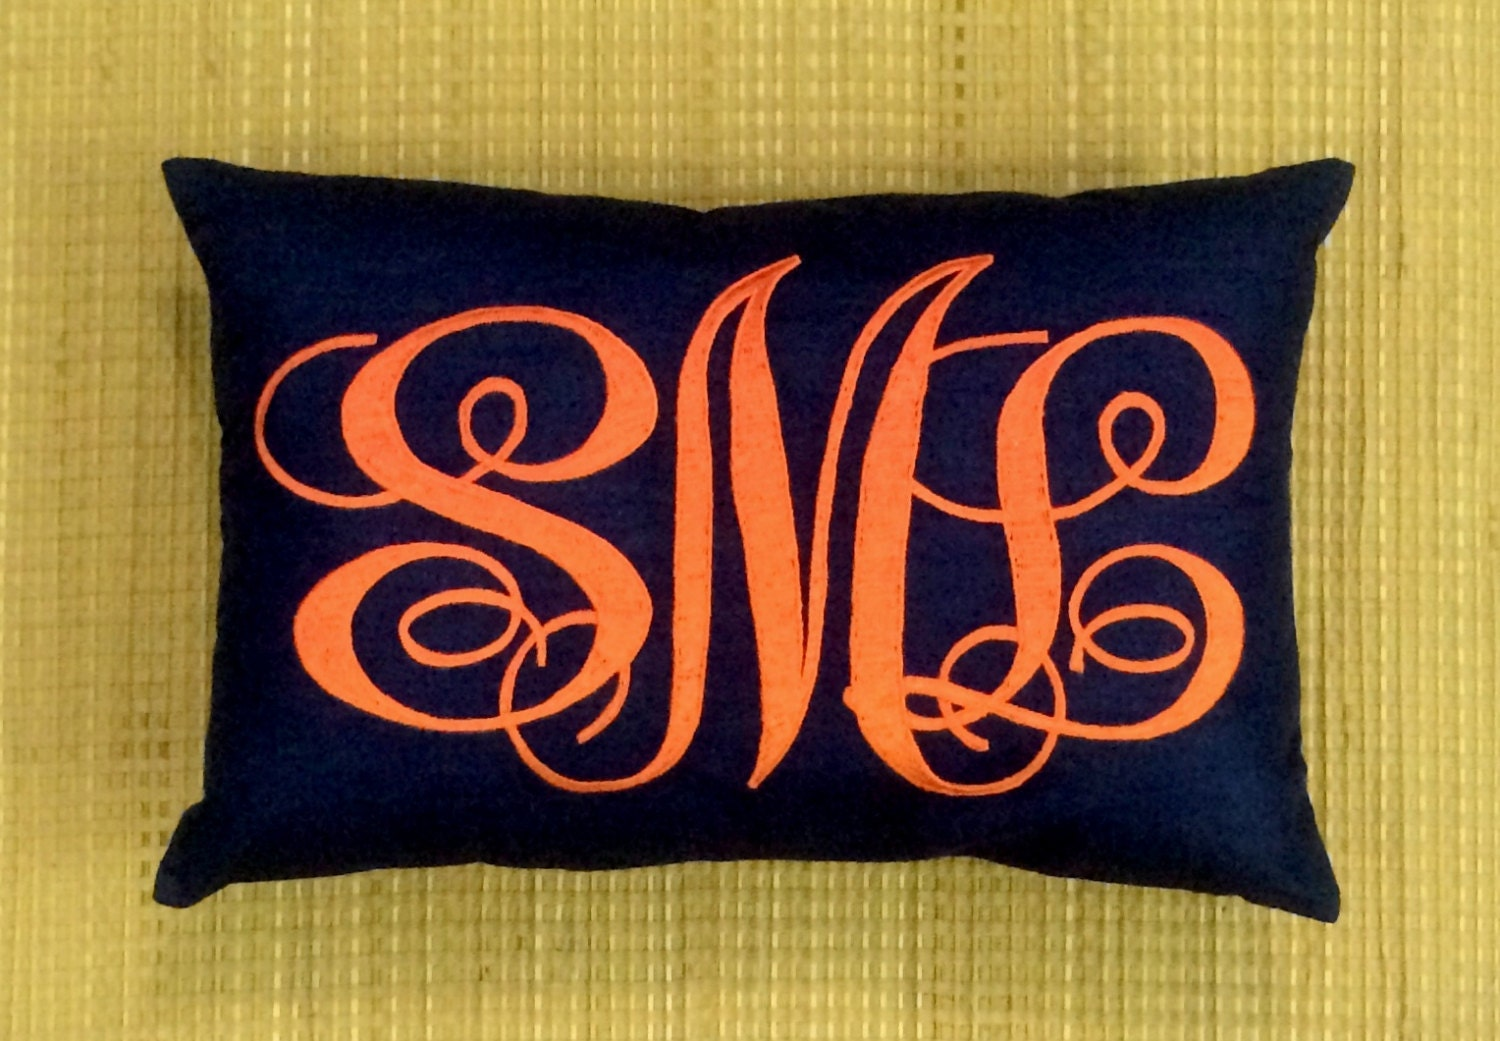 How To Make A Monogram Throw Pillow : 40%OFF Monogram Pillow Decorative Throw Pillow Personalized